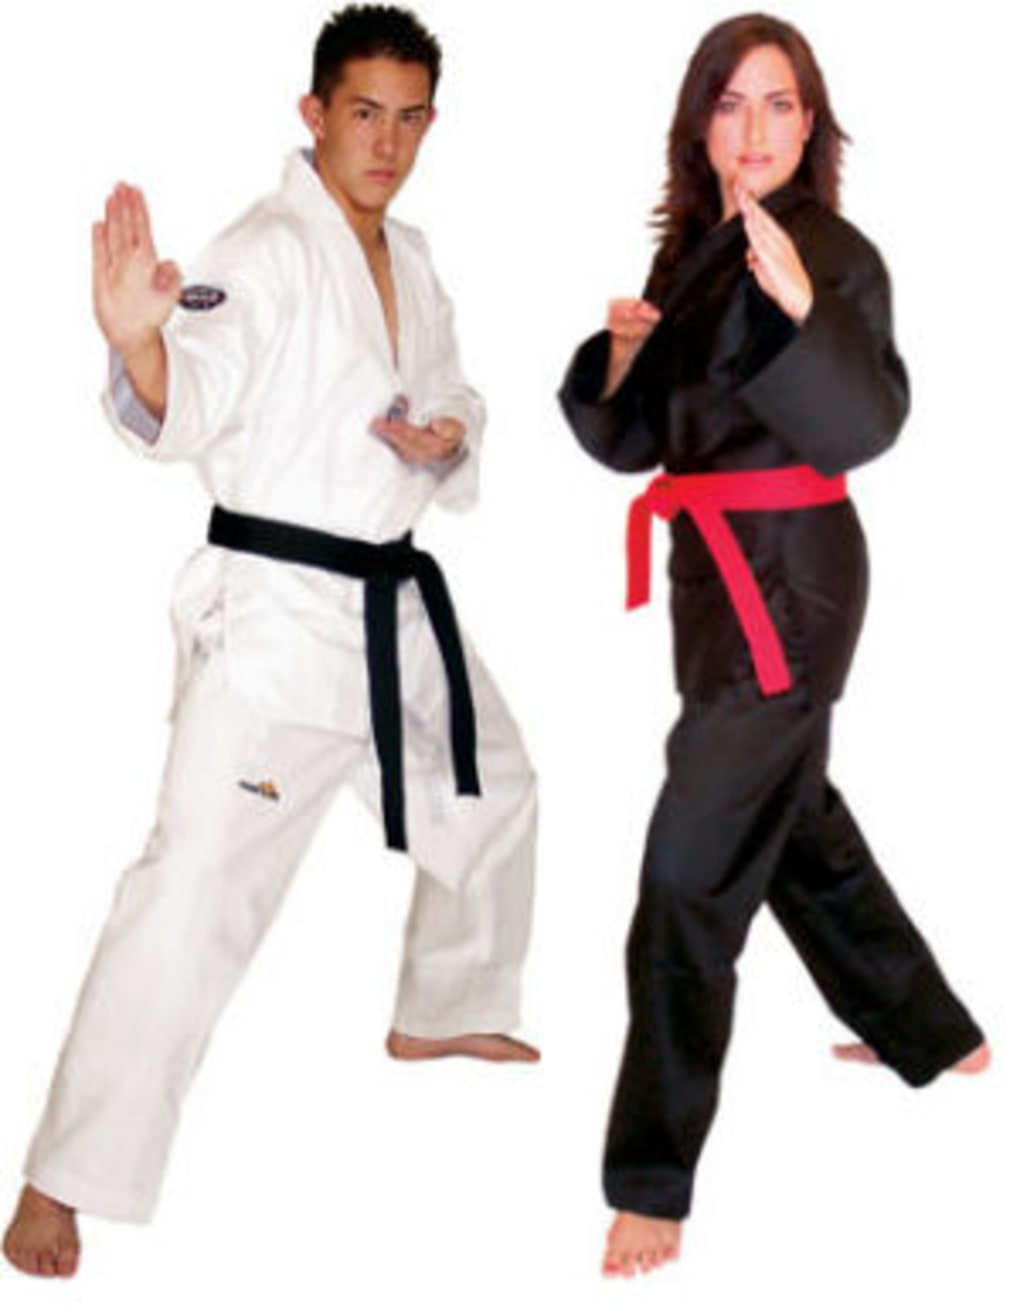 Kids Martial Arts in Oakleigh - Challenge Martial Arts & Fitness Centre  - Why Martial Arts?